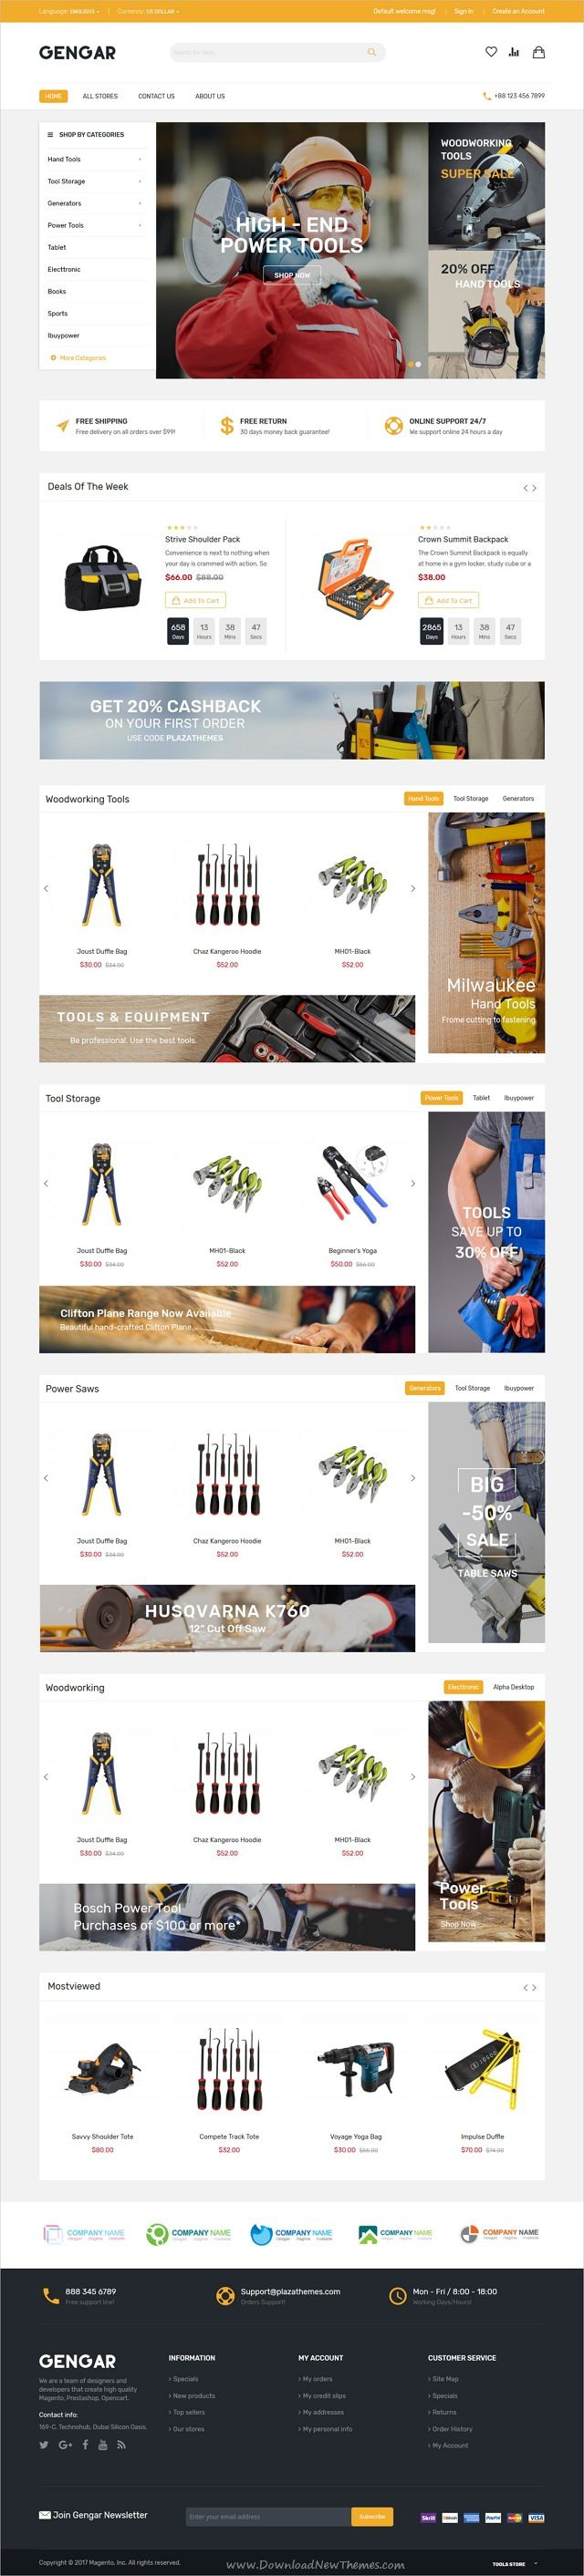 Gengar is clean and modern design 6in1 responsive #Magento theme for stunning #tools shopping #eCommerce website download now..